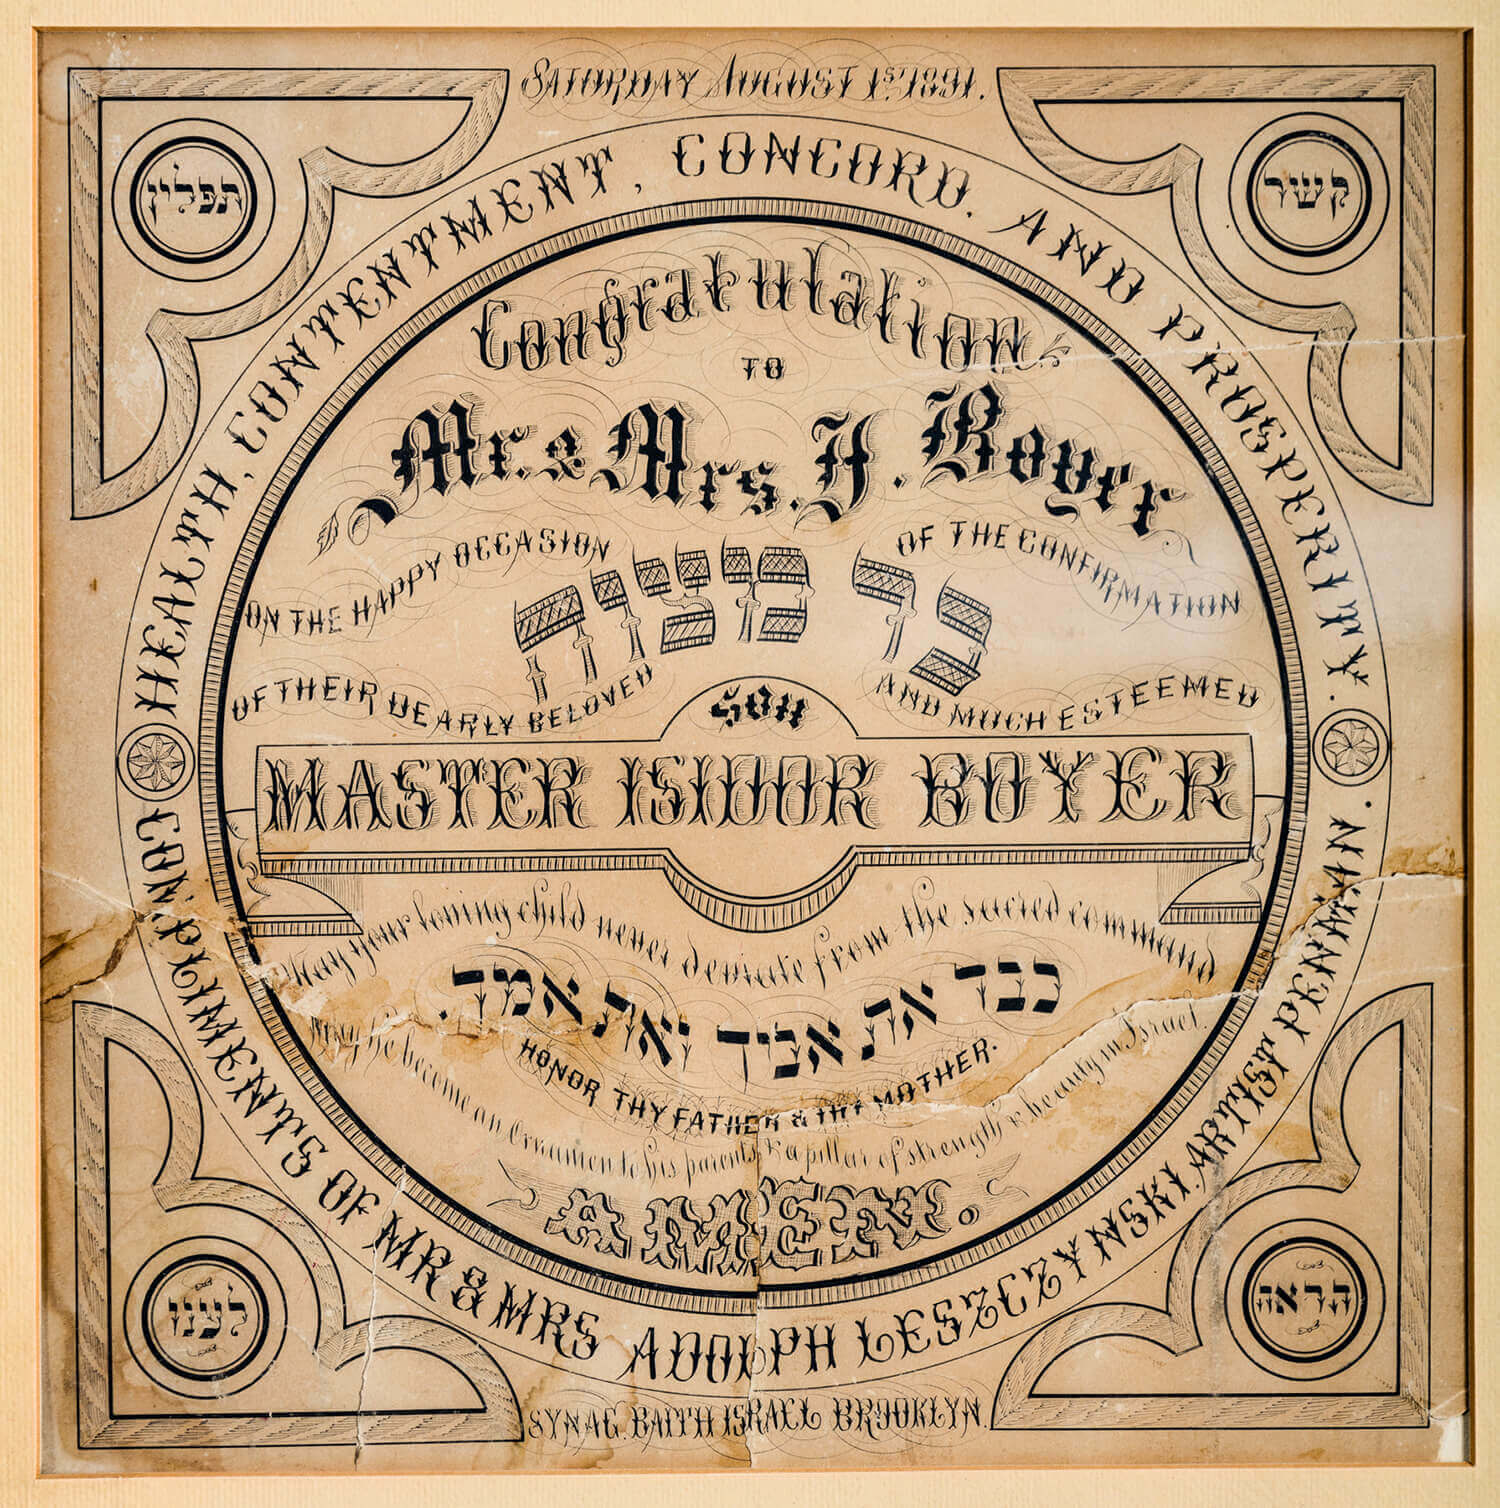 132. A BAR MITZVAH CERTIFICATE FROM THE BAITH ISRAEL SYNAGOGUE OF BROOKLYN